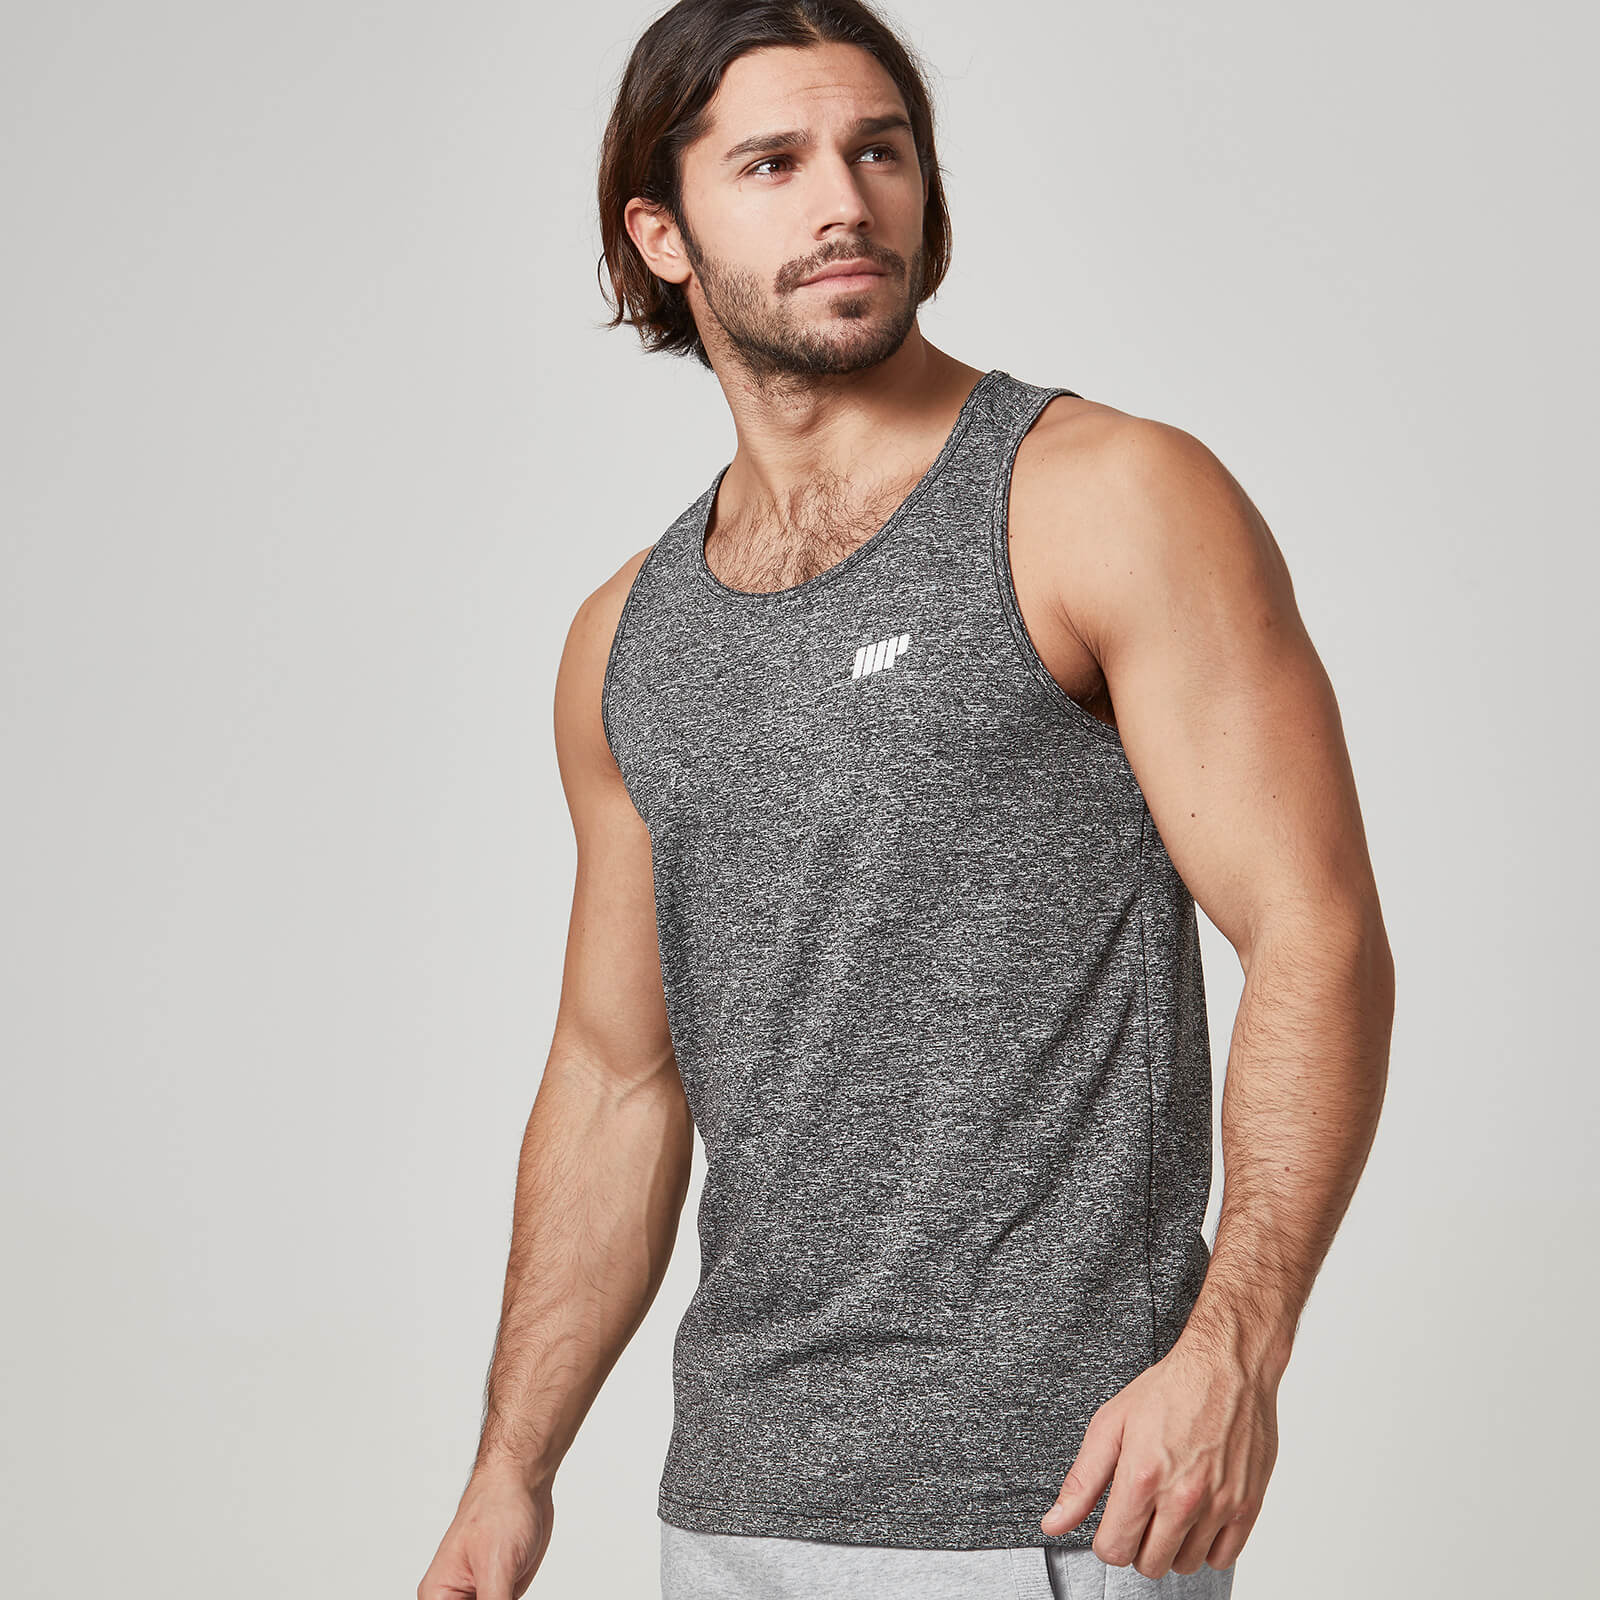 Myprotein Dry Tech Tank Top - Grey, XL